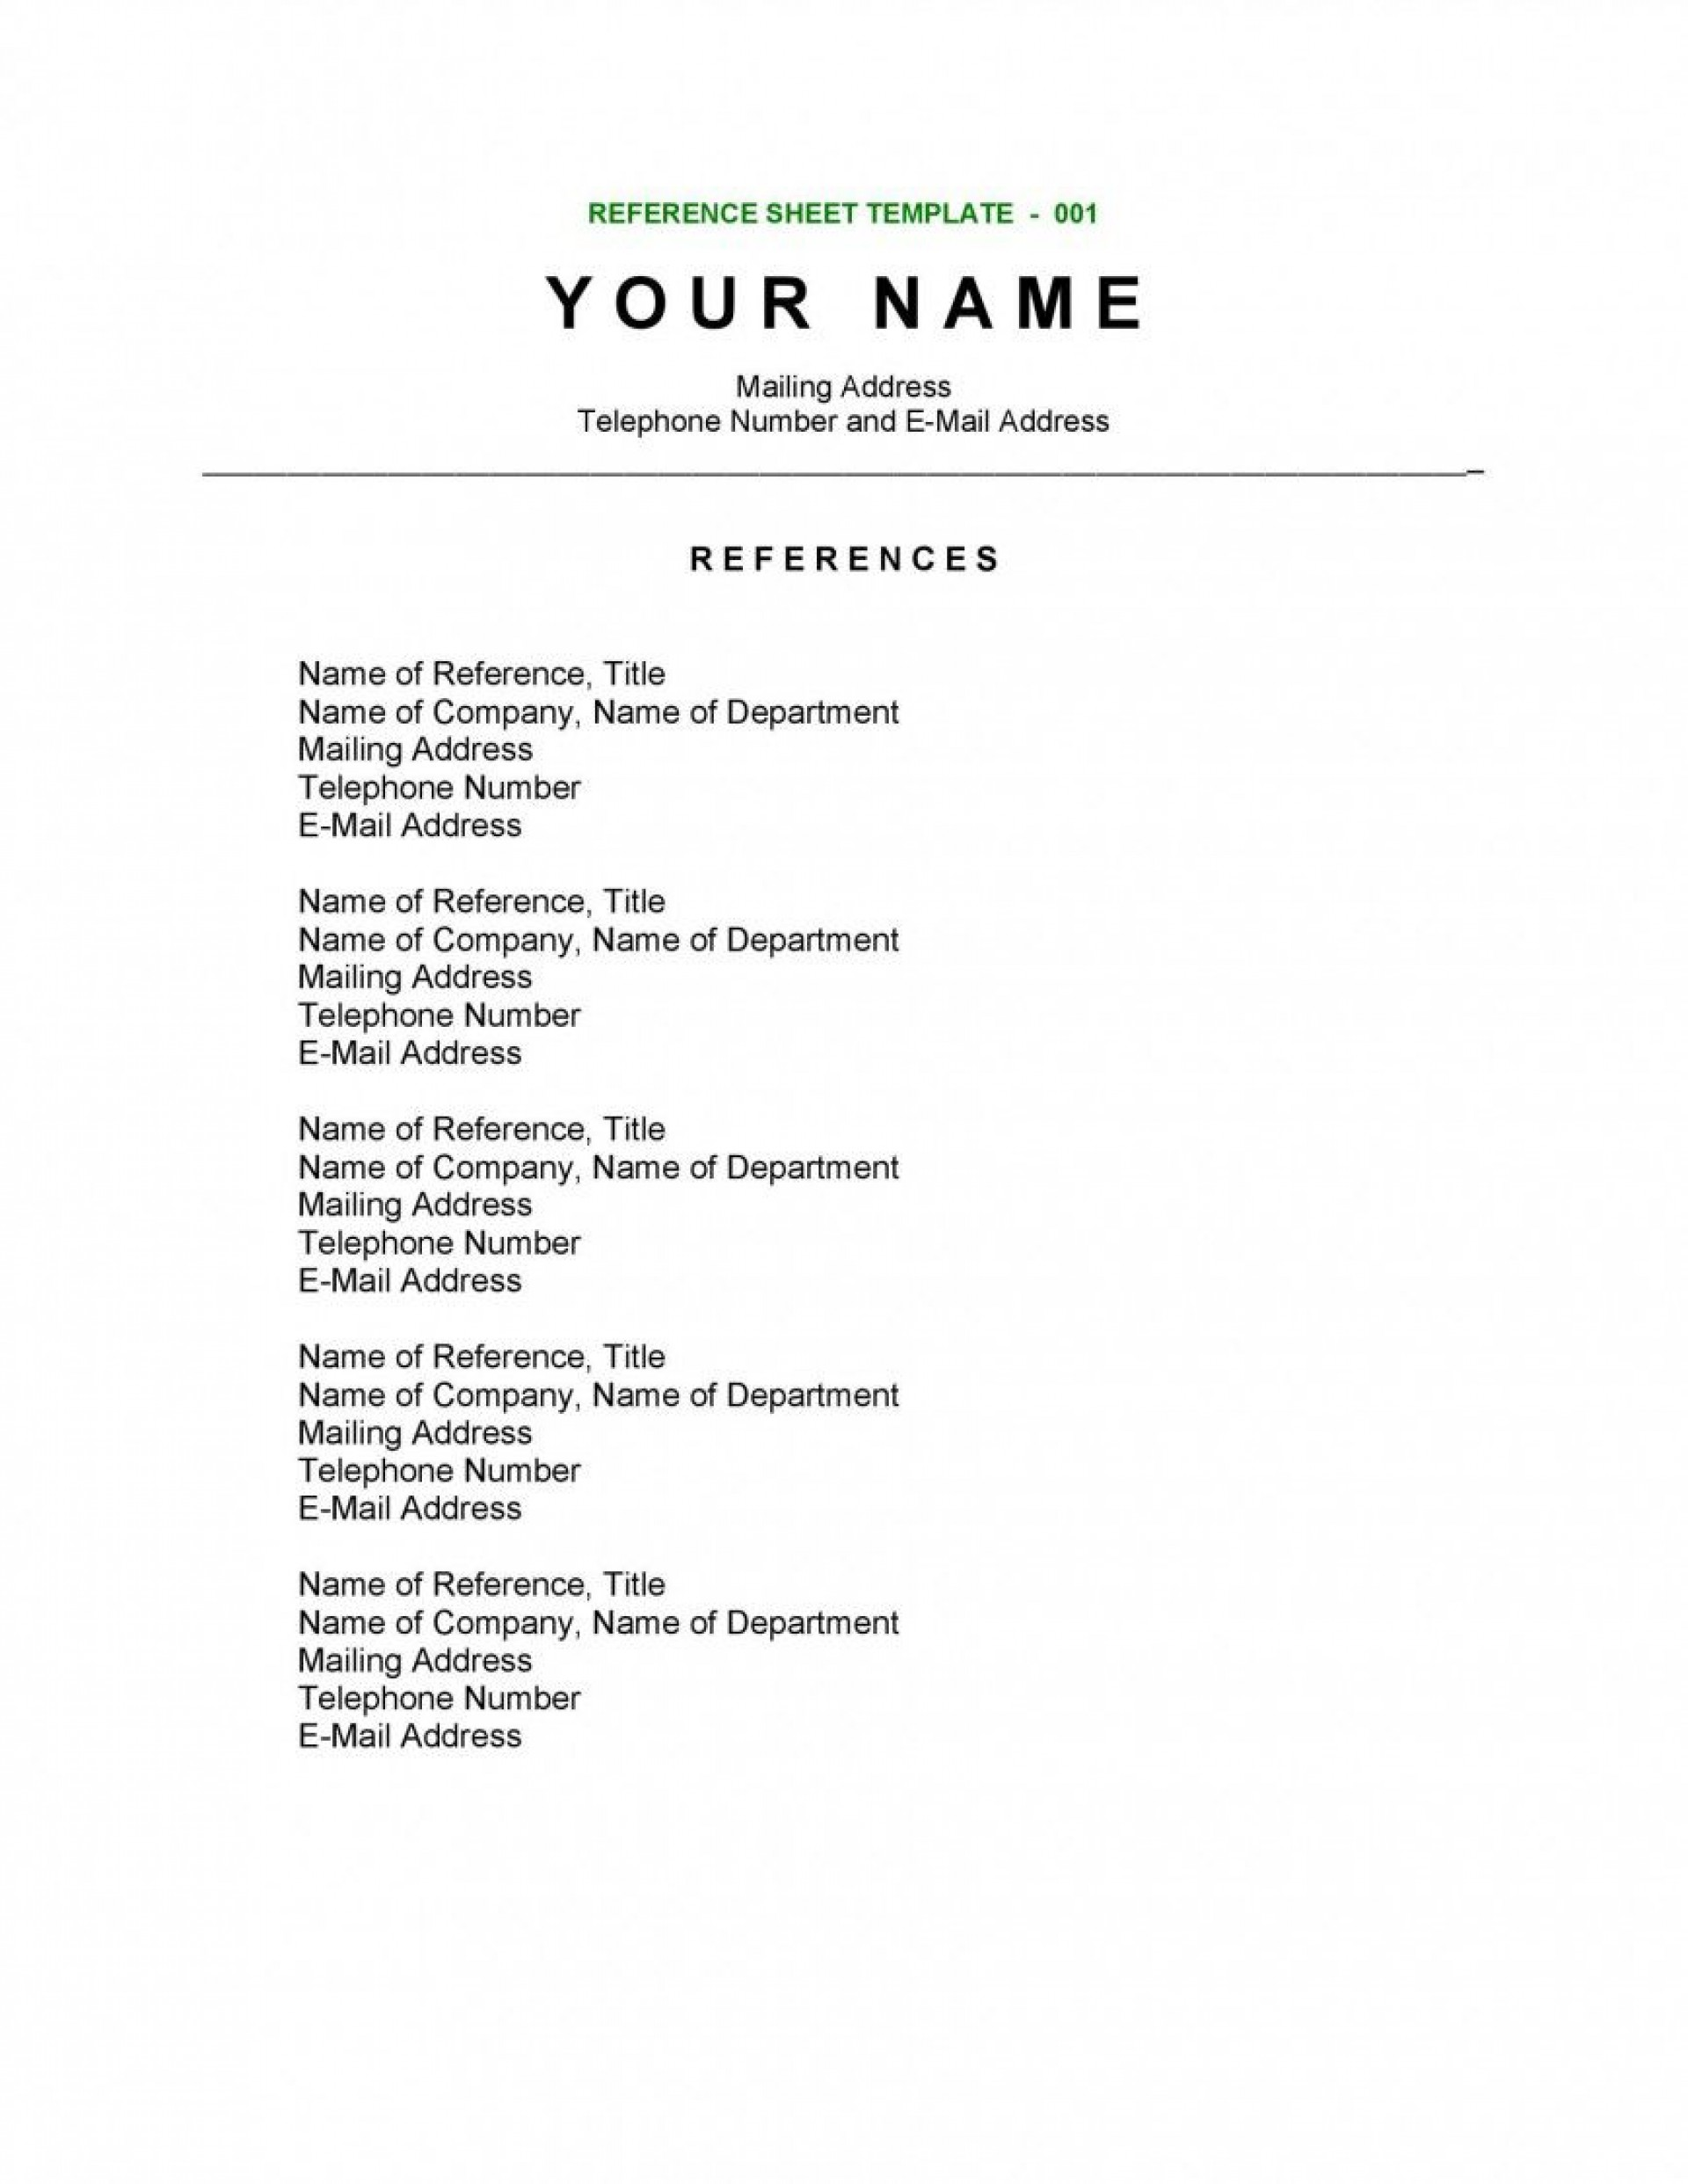 003 Fascinating Sample List Of Reference Template High Def 1920